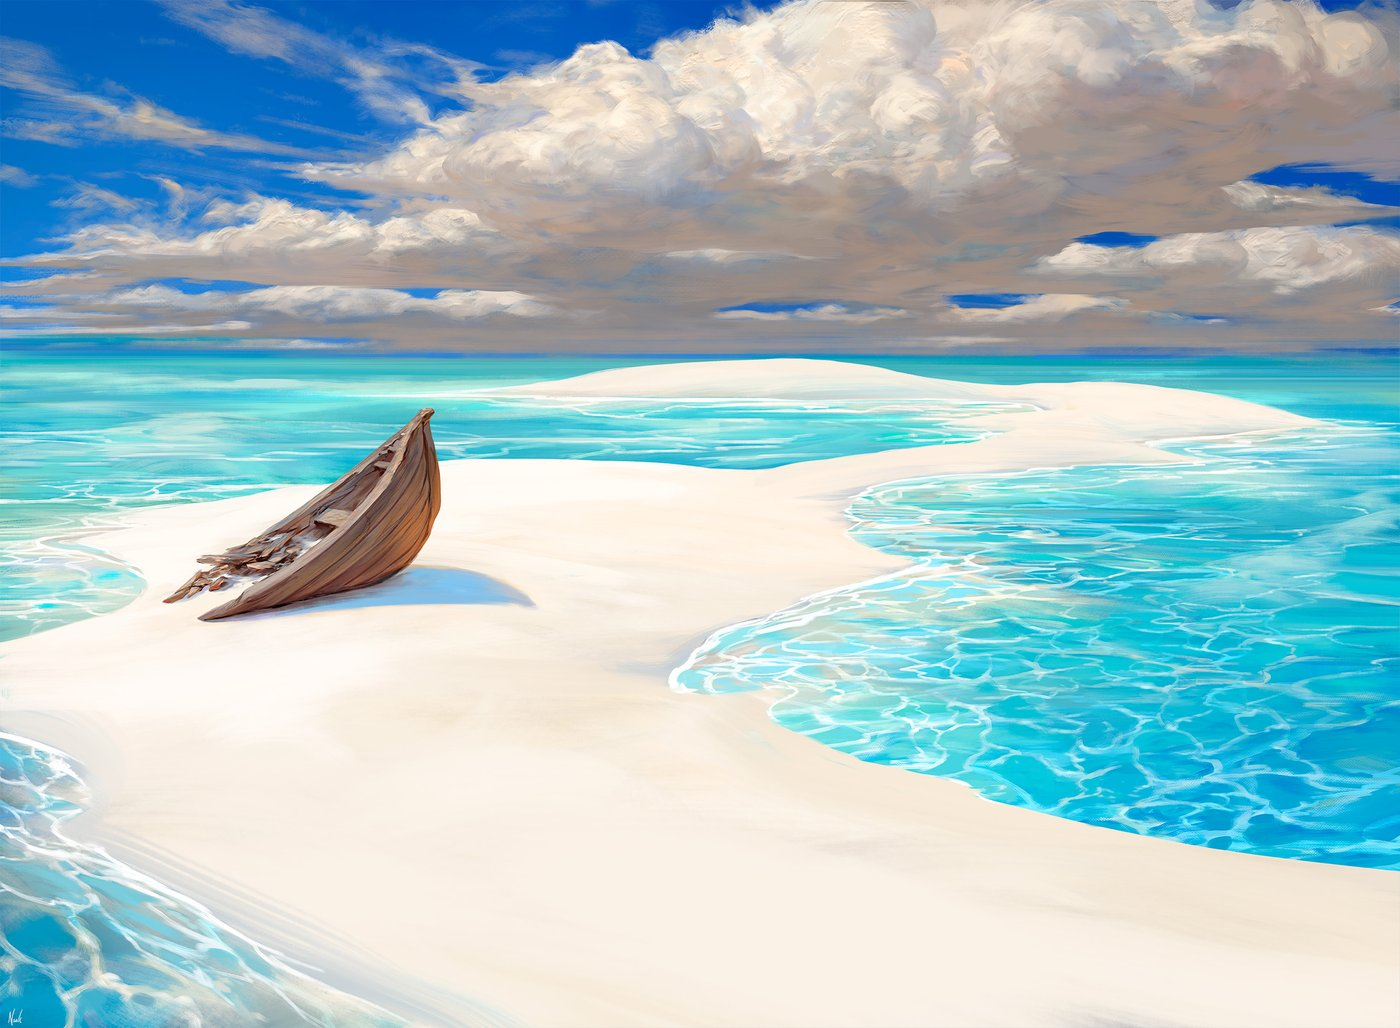 """Lonely Sandbar"" by Noah Bradley, 2019"